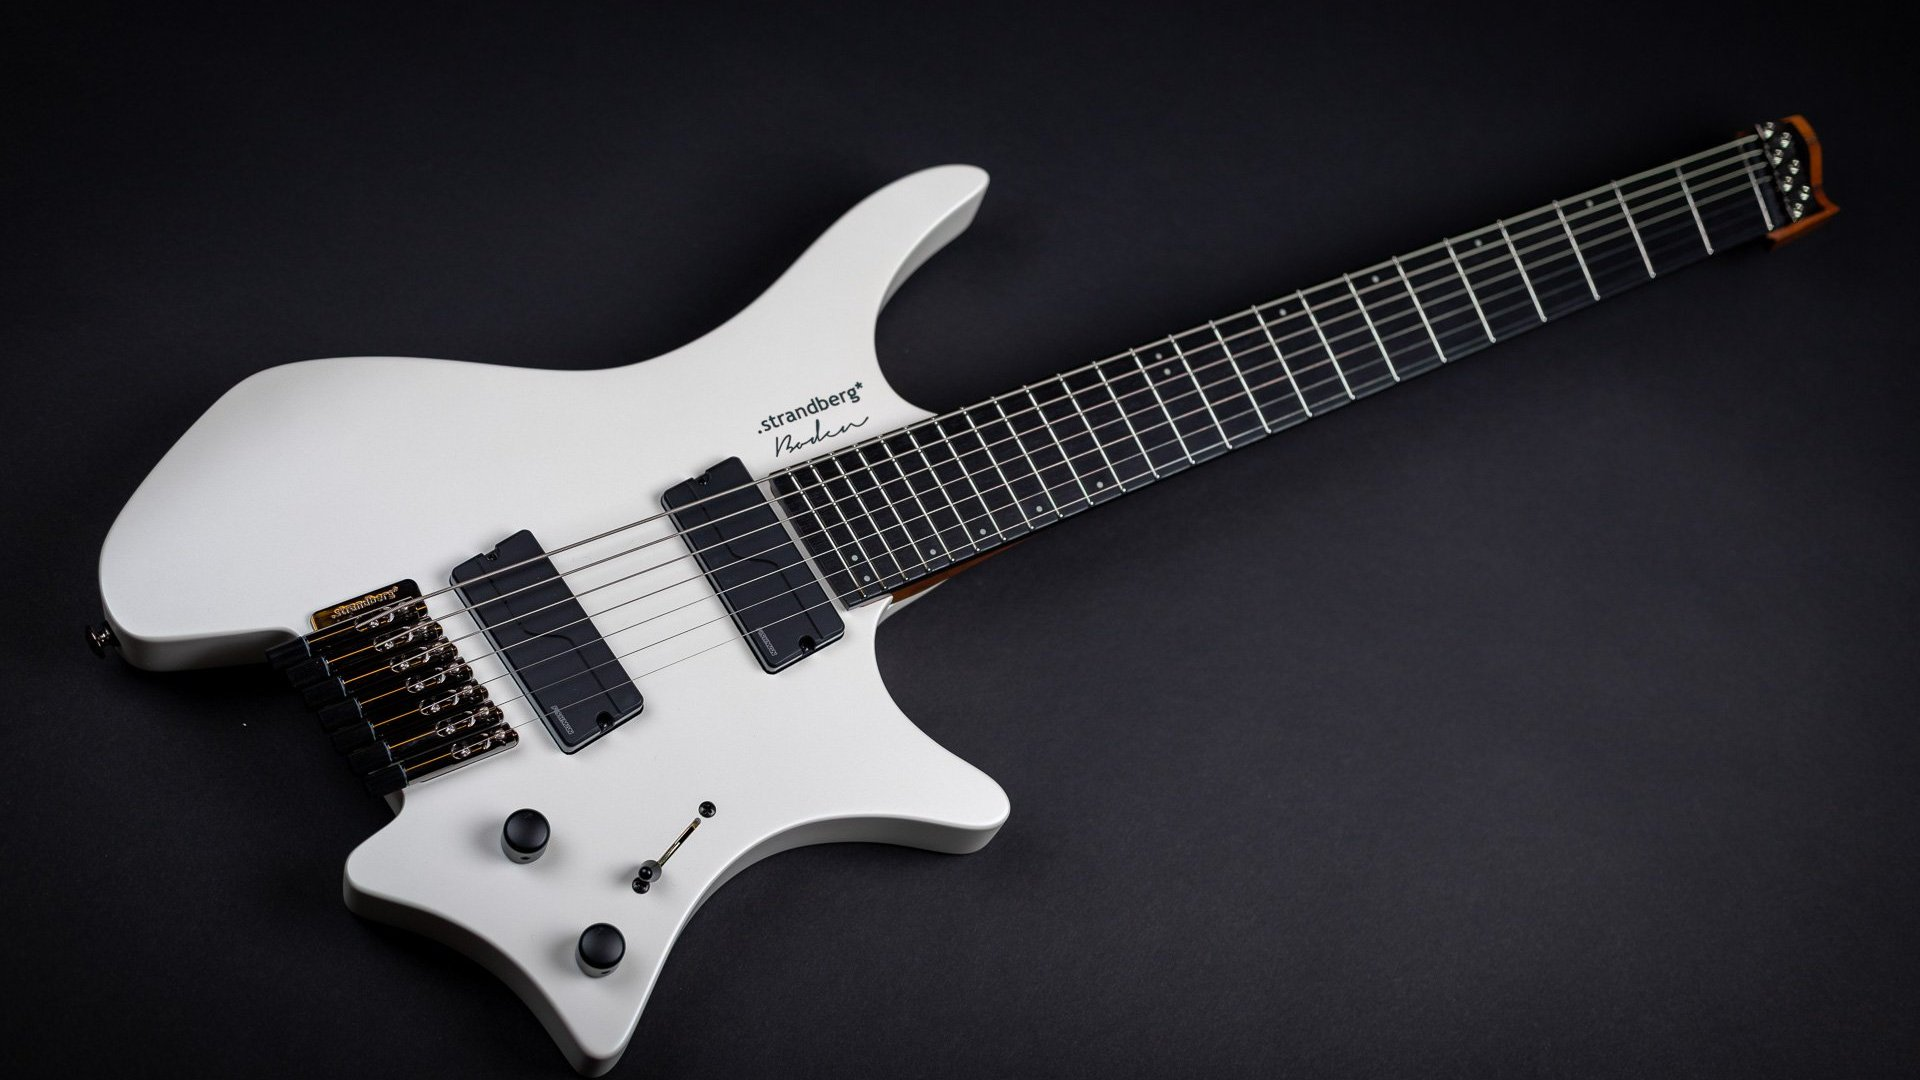 Headless guitar boden metal white 7 string front view